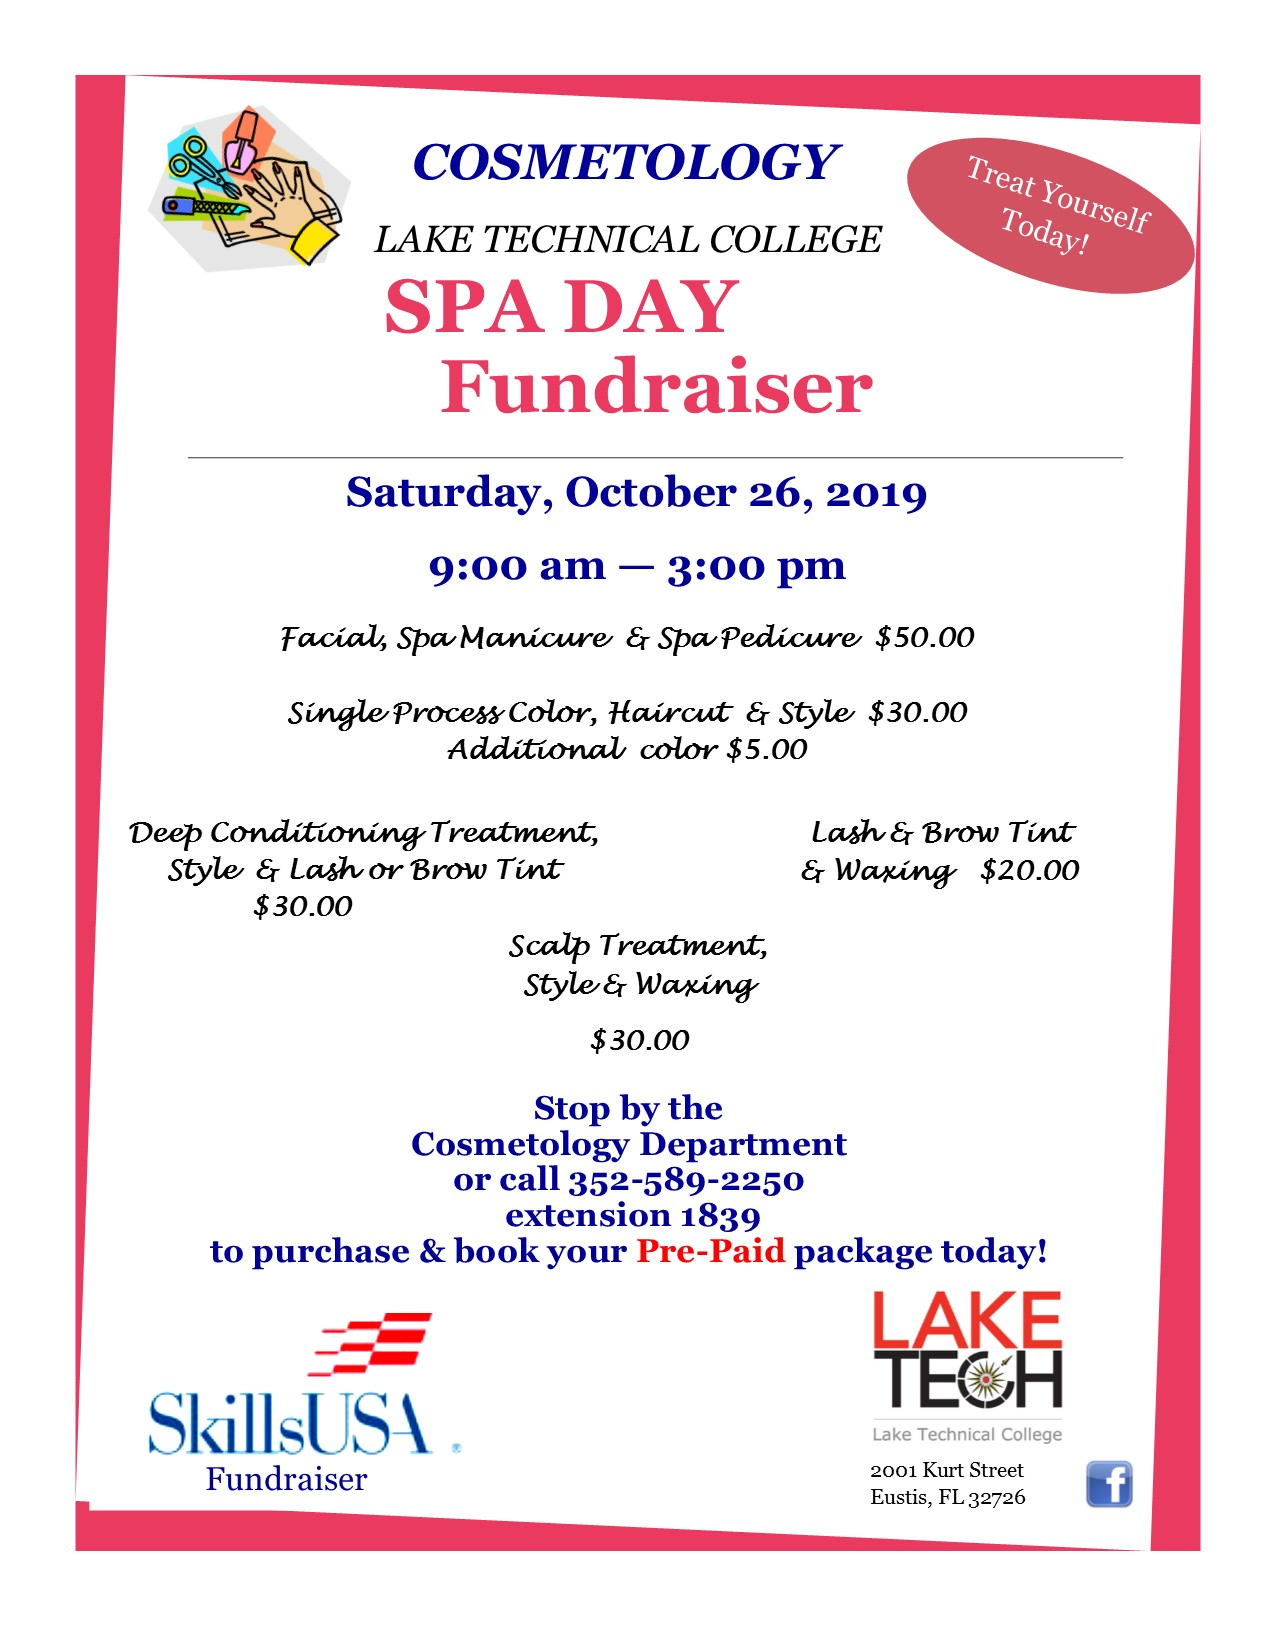 New October 2019 Cosmetology Spa Day Flyer Day Academic Affairs 10/18/19